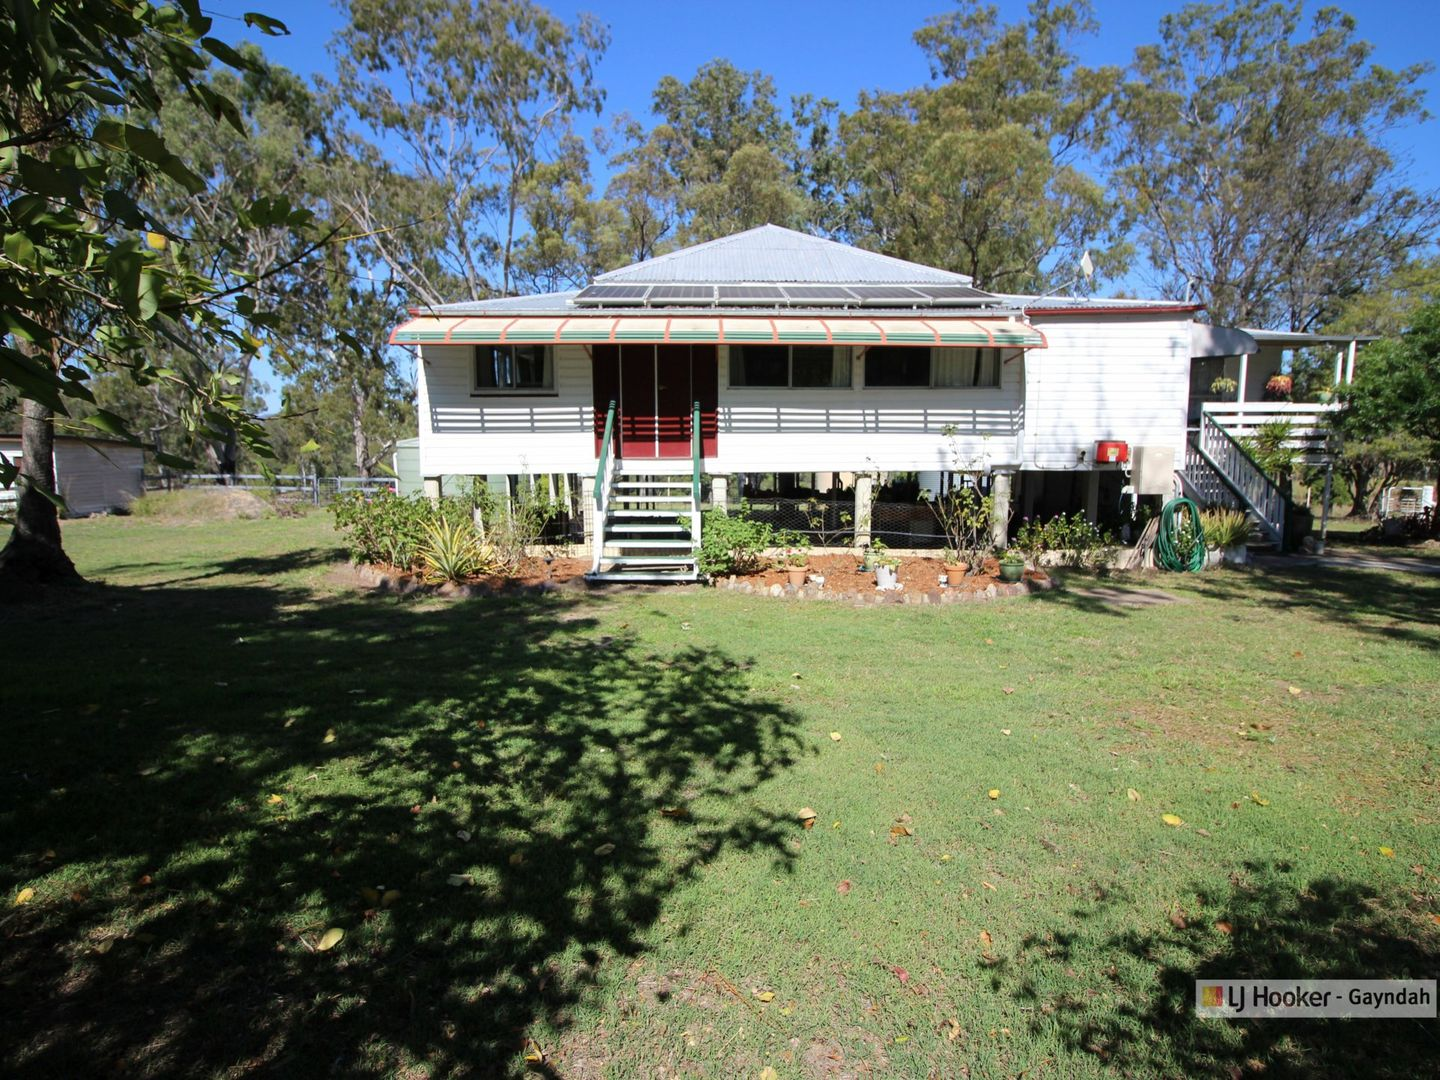 5370 Gayndah Mount Perry Road, Mount Perry QLD 4671, Image 0